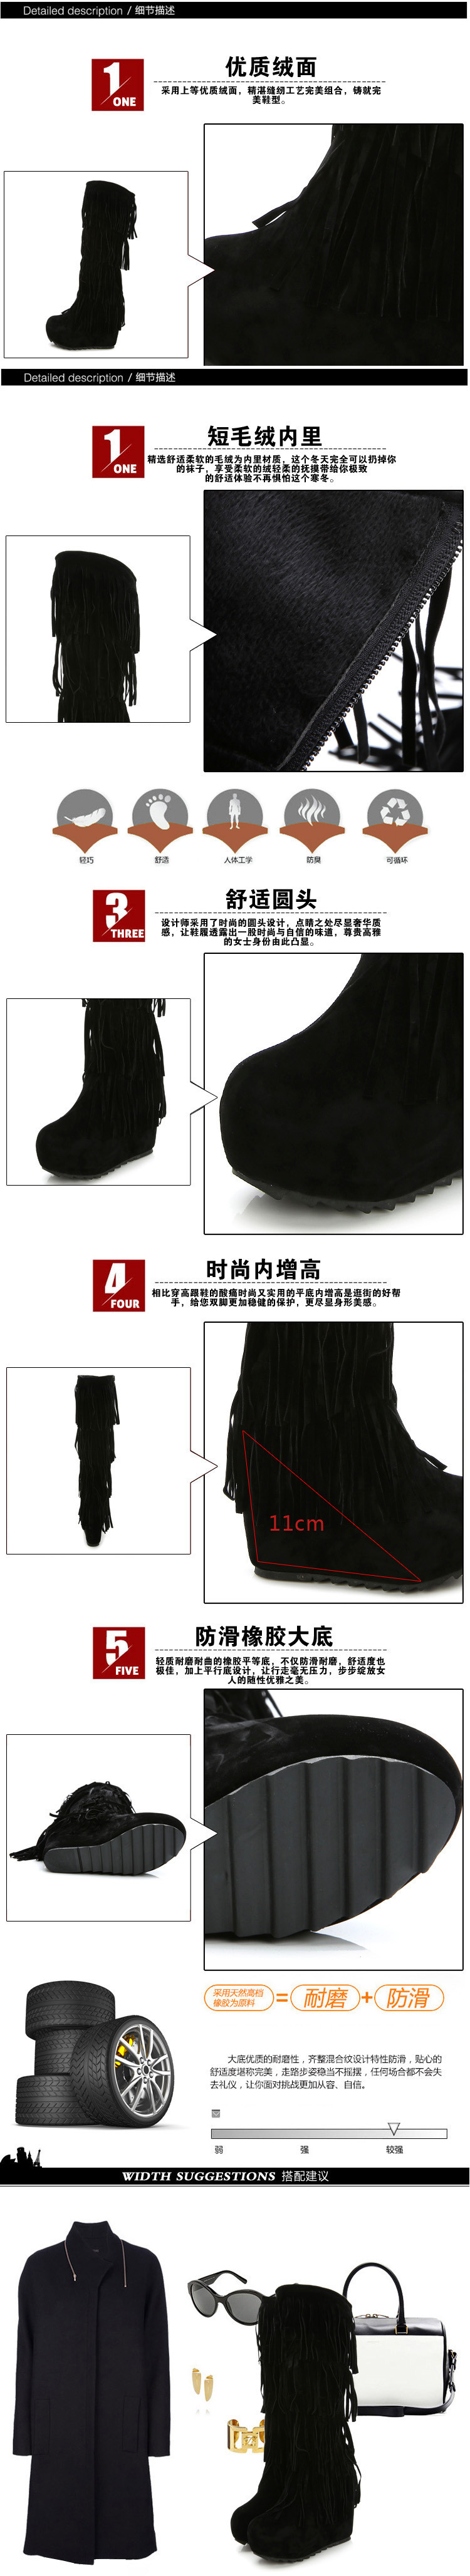 2016 Autumn And Winter Women's Retro Elegant Fringed Shoes Wedge Heel Suede Platform Knee High Boots